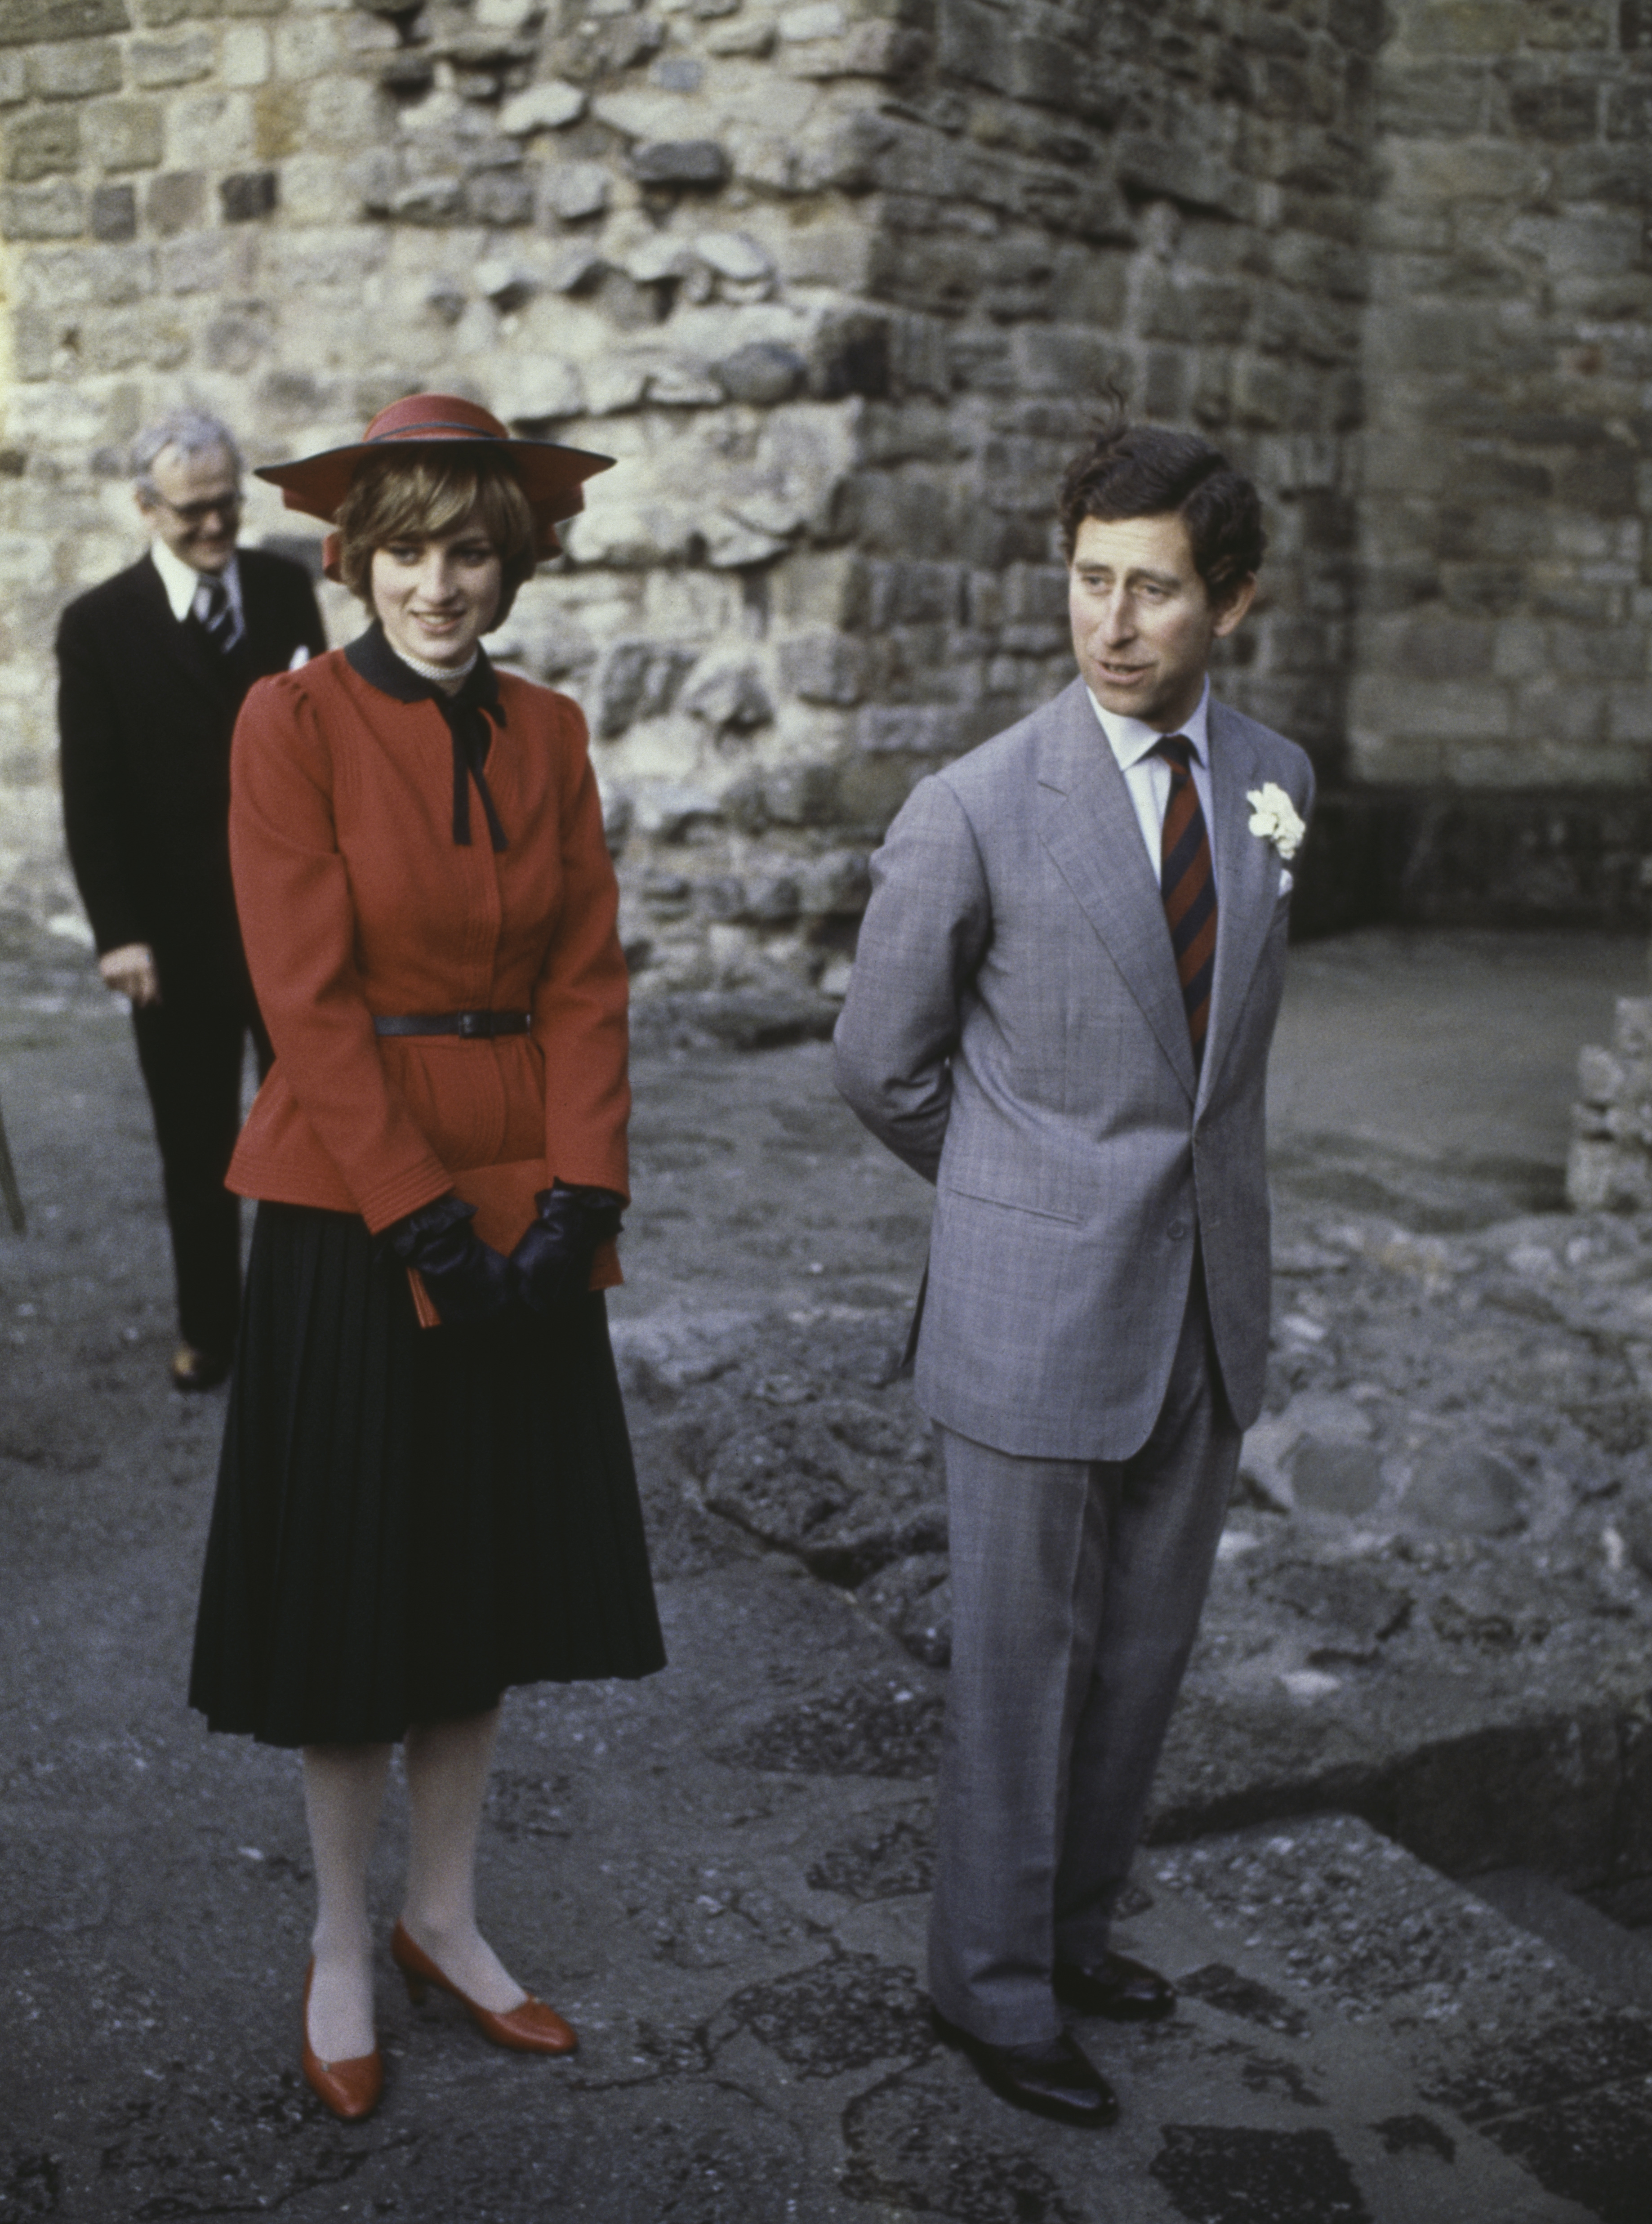 Prince Charles Prince Charles and the Princess of Wales (1961 - 1997, later Diana, Princess of Wales) at Caernarvon Castle during an official tour of Wales, 27th October 1981. (Photo by Hulton Archive/Getty Images)